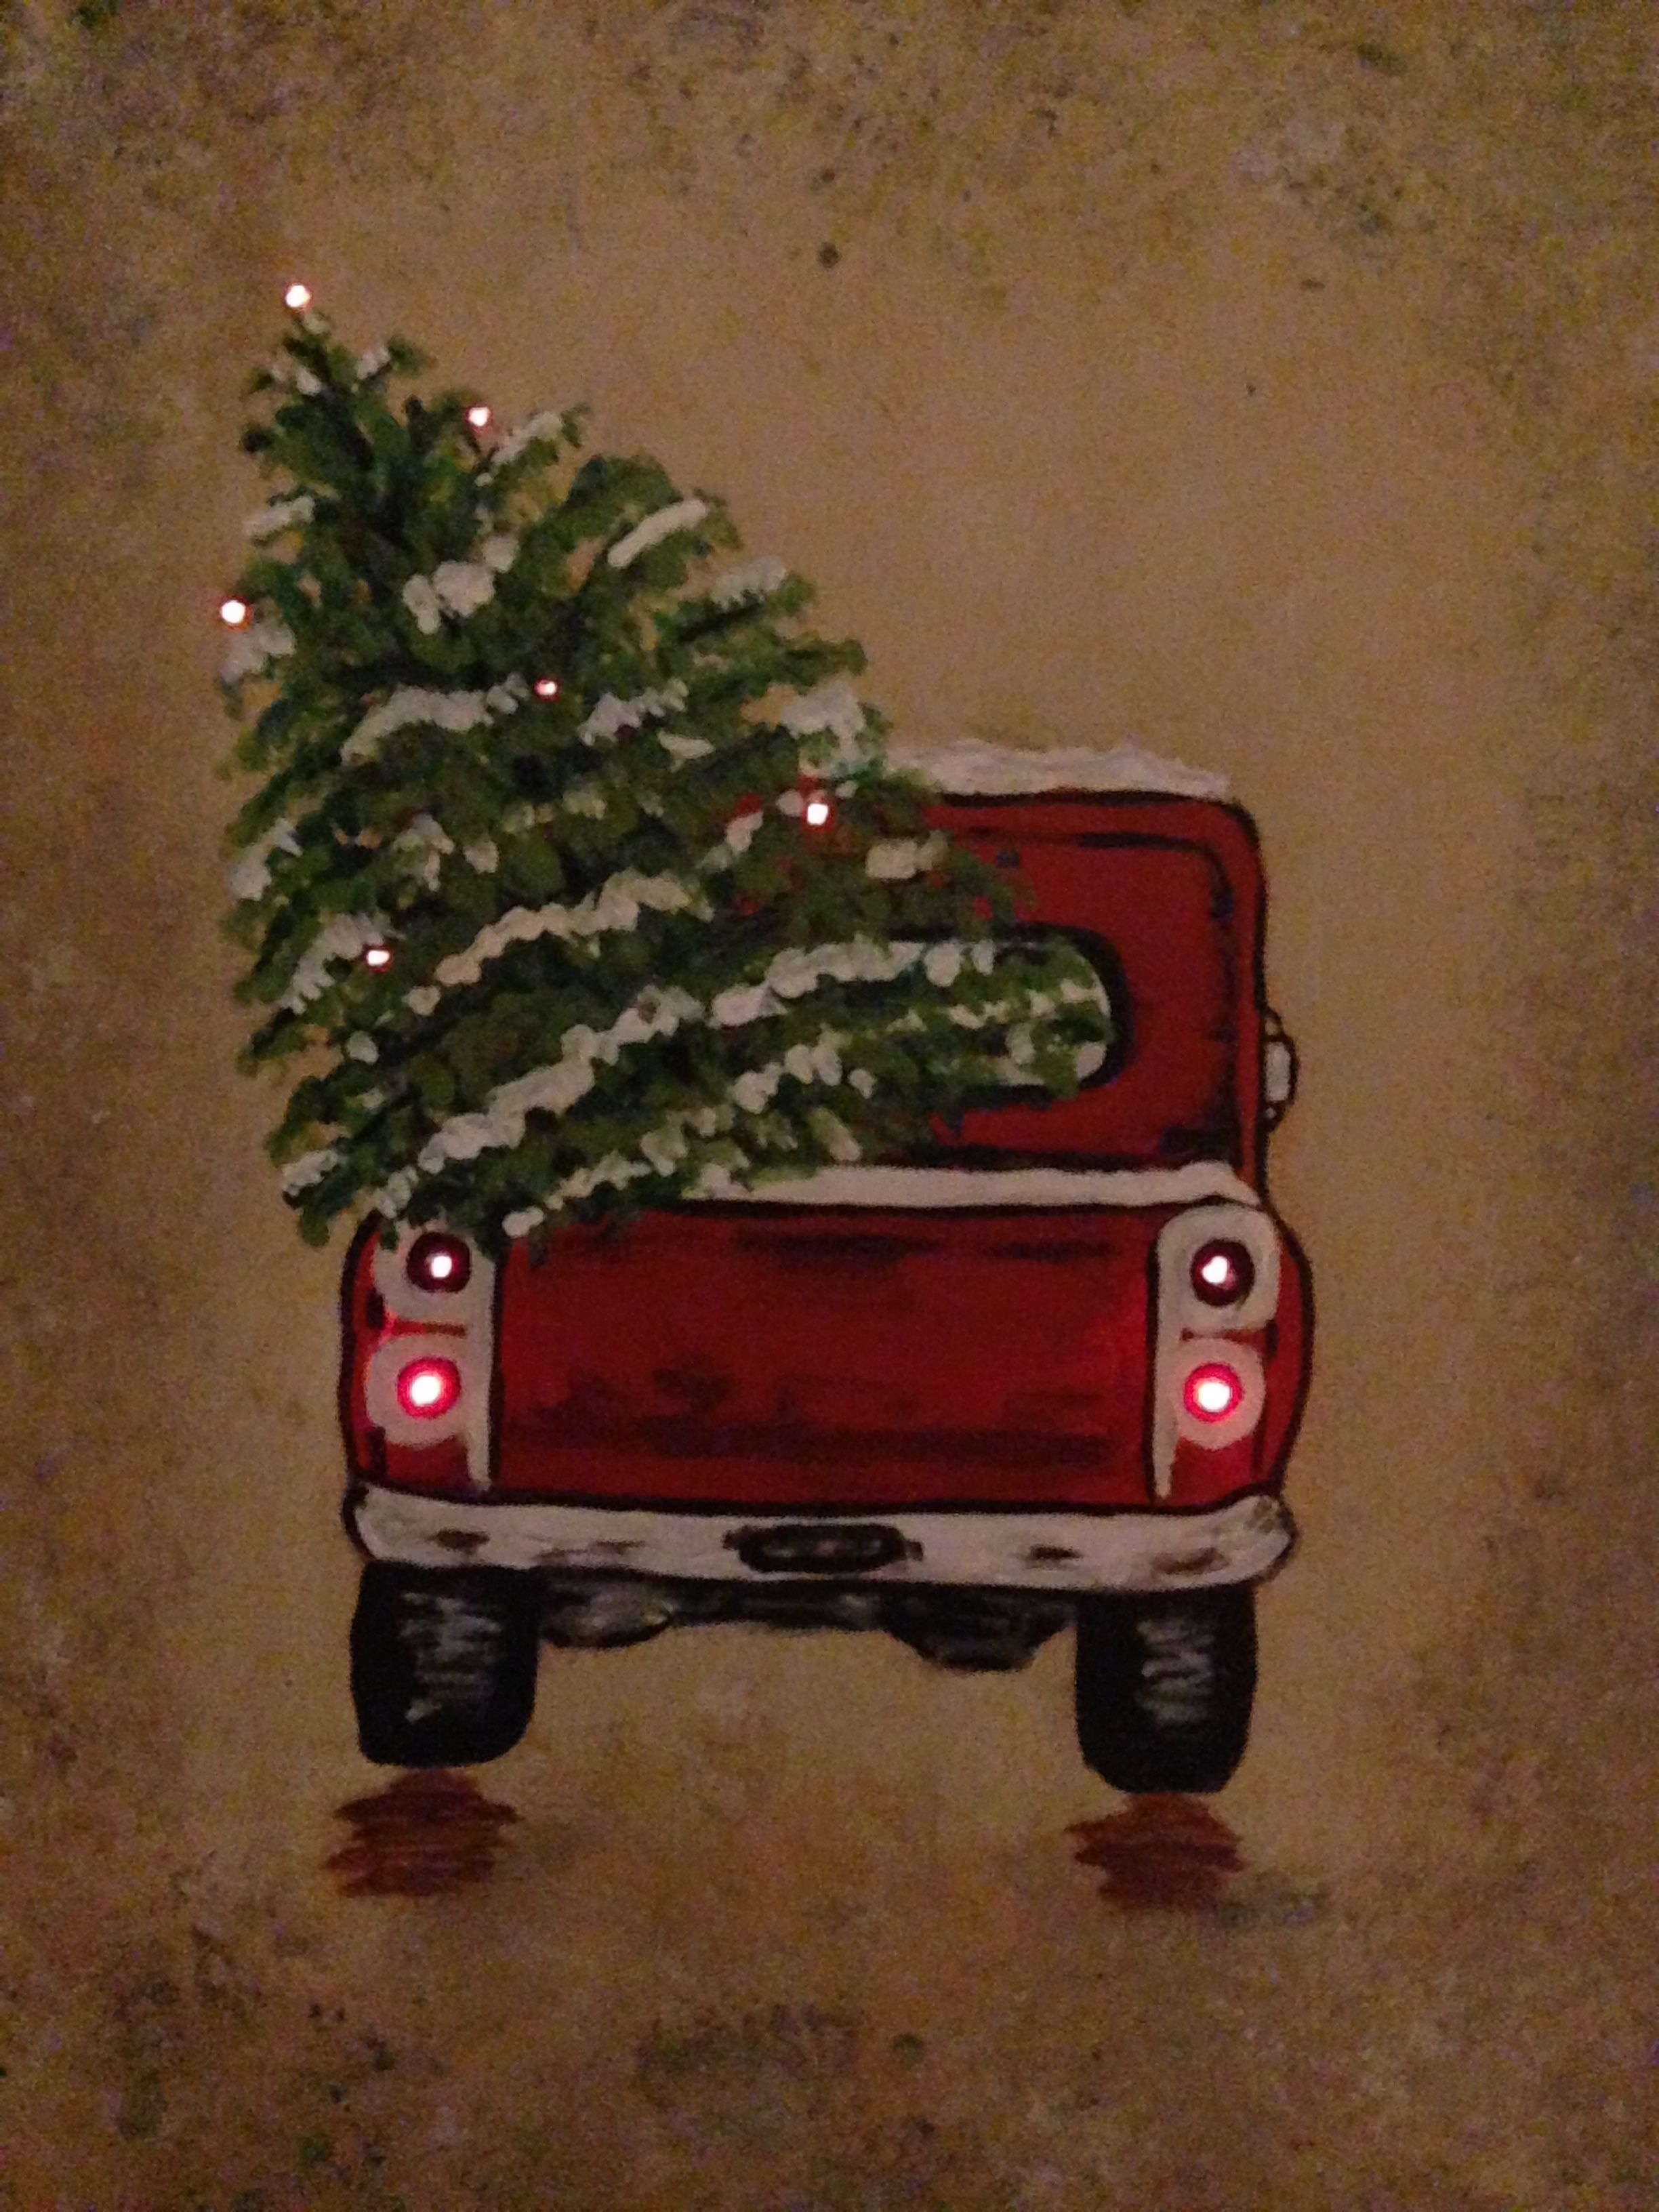 Hand Painted Acrylic Truck Painted On Canvas Lights In Canvas Red Truck With Pine Tree Lig Christmas Tree Drawing Christmas Paintings Christmas Tree Canvas